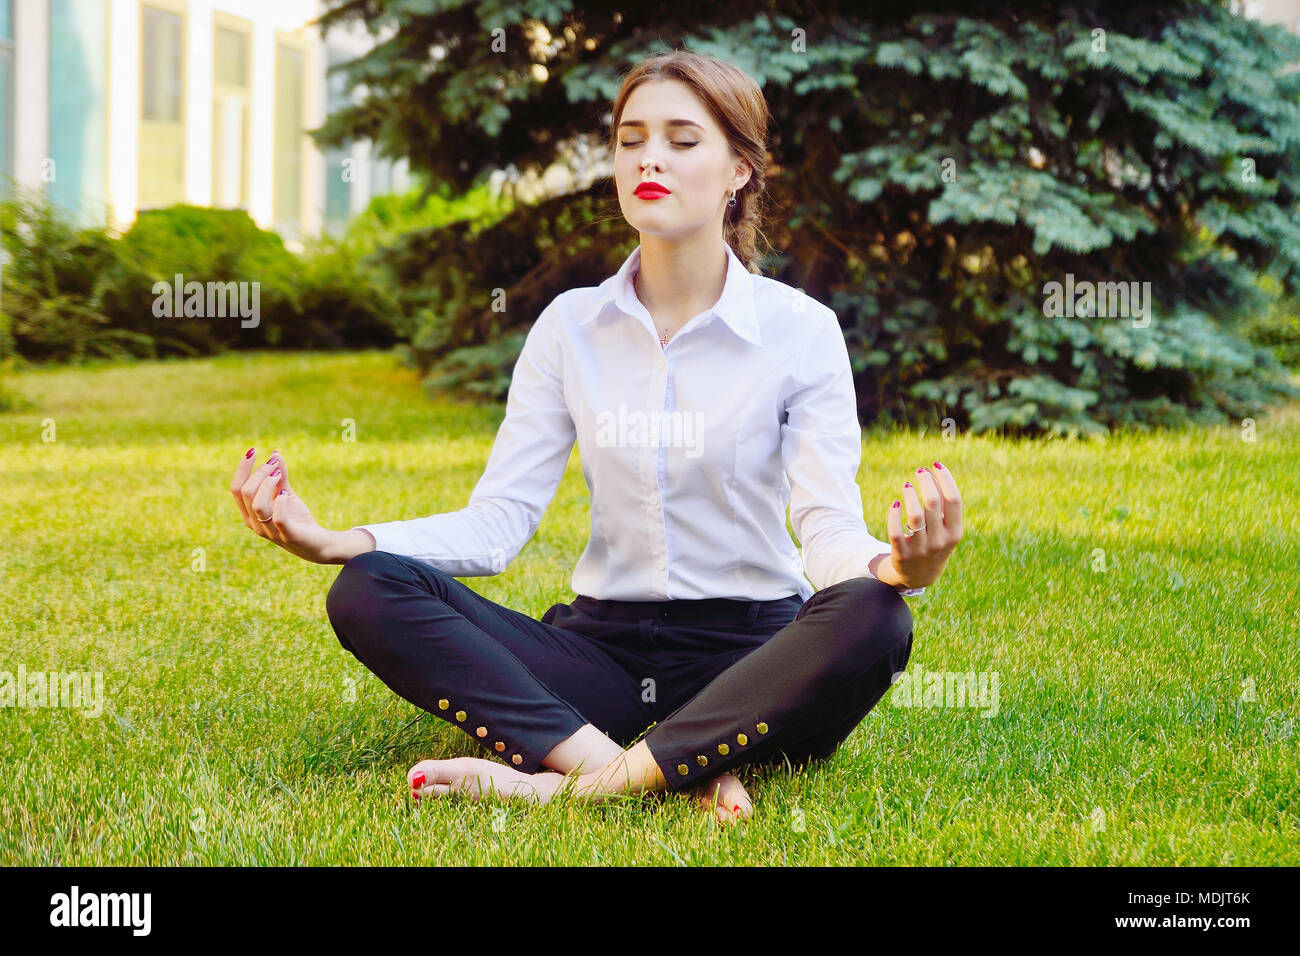 Lotus pose is a guarantee of health 8